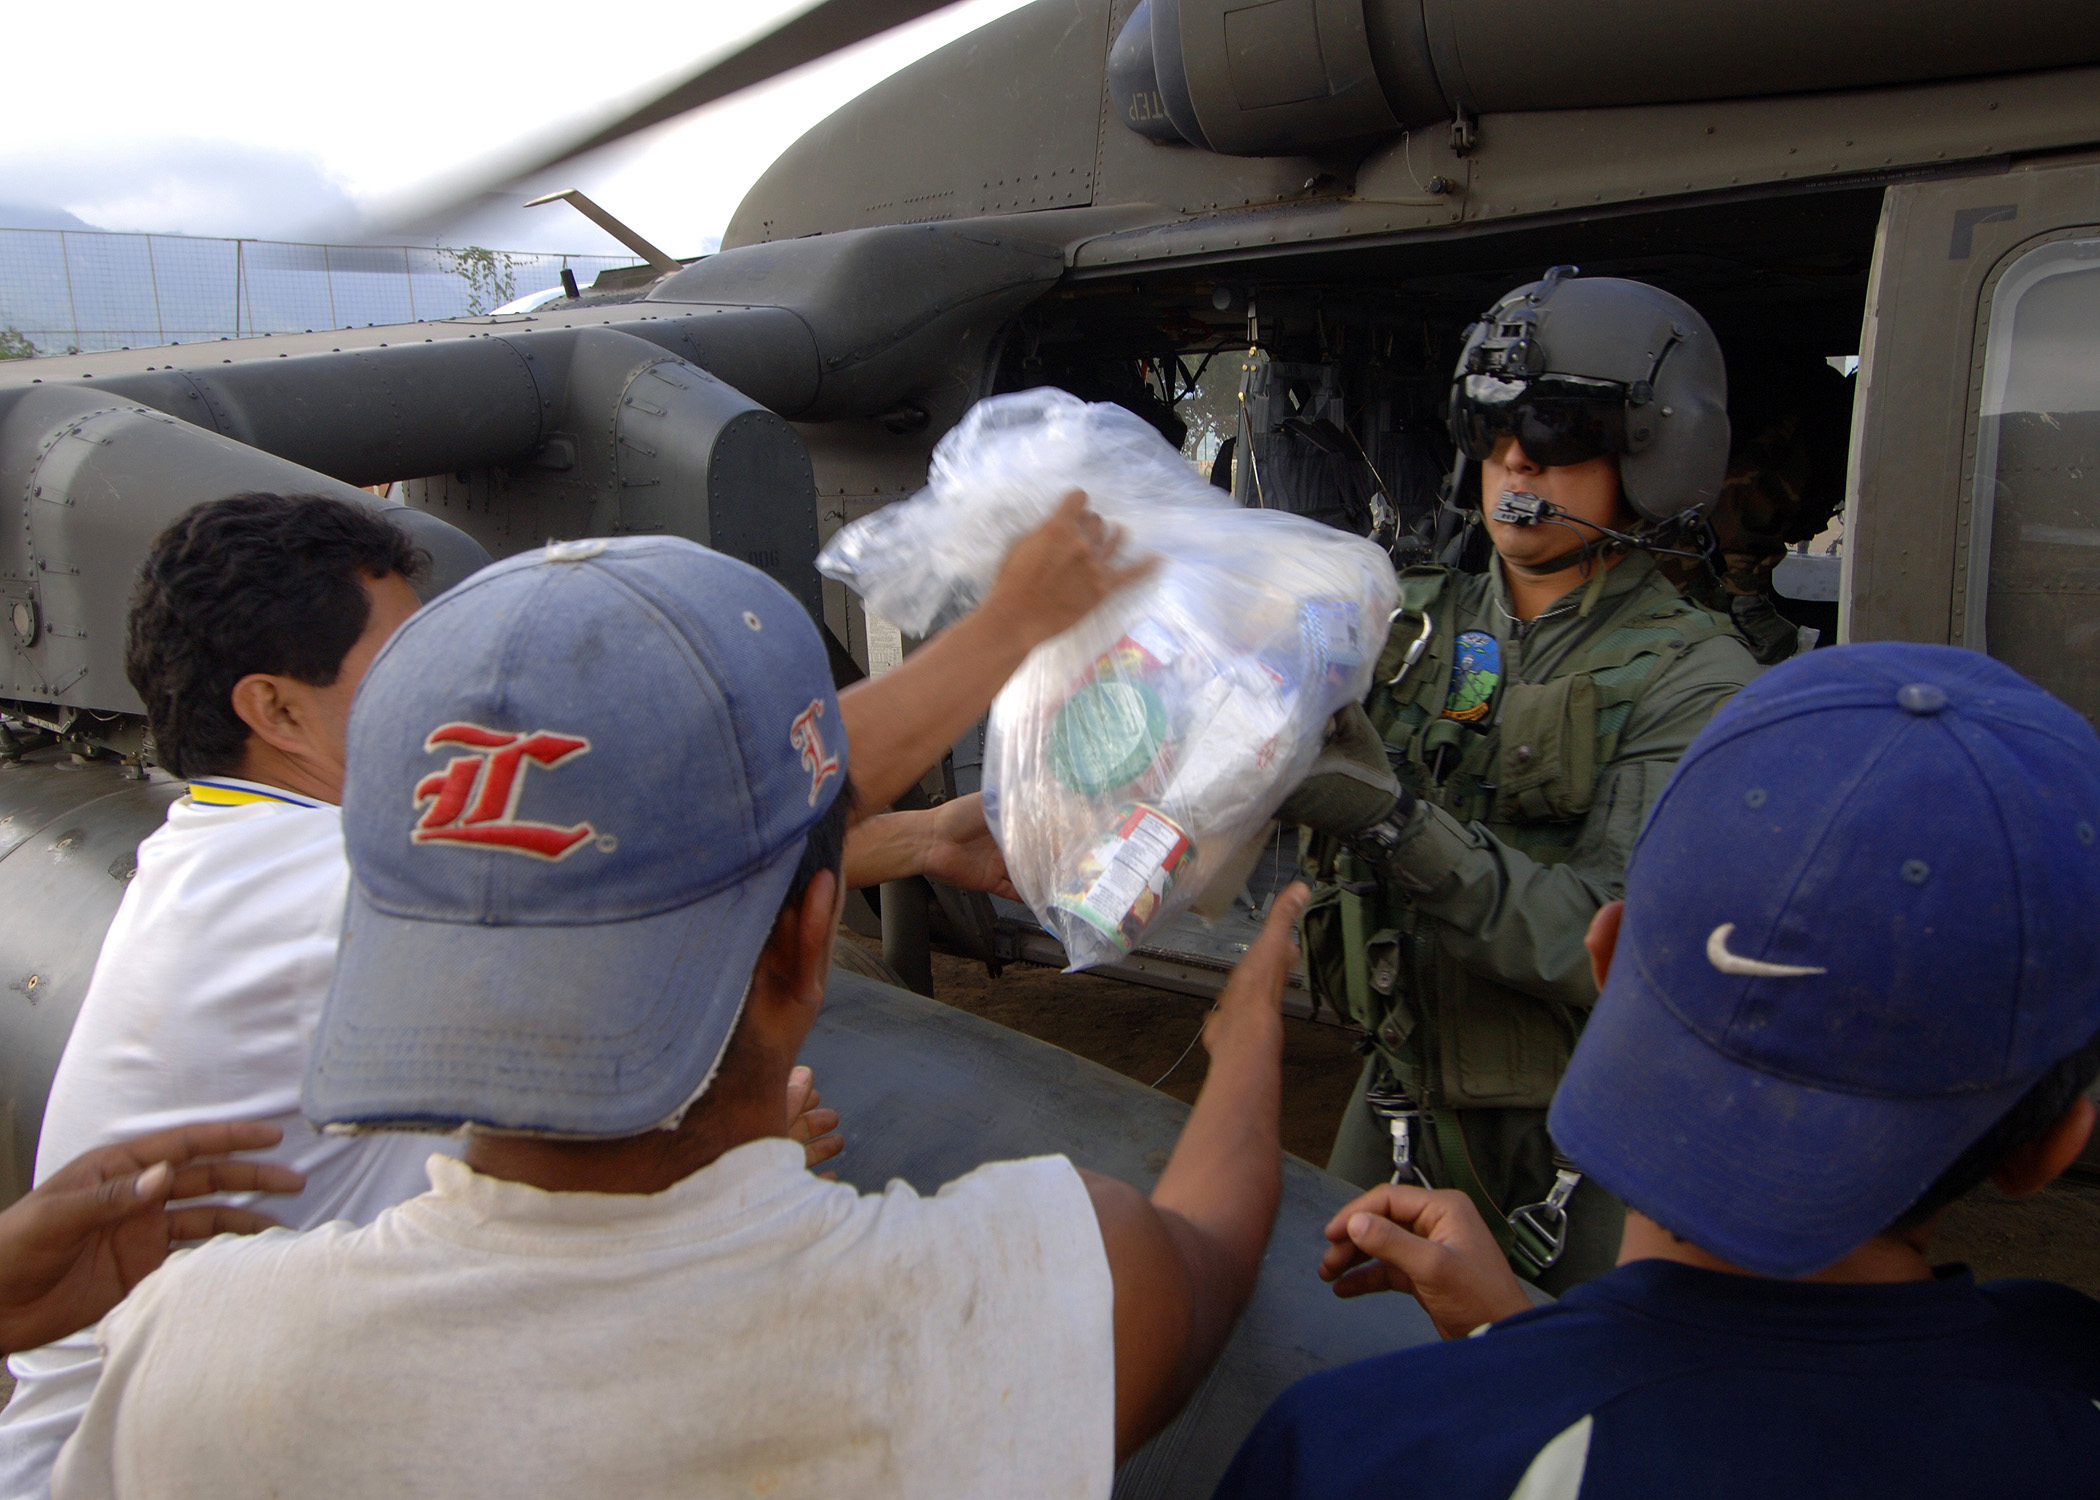 A helmeted soldier hands out bags of supplies